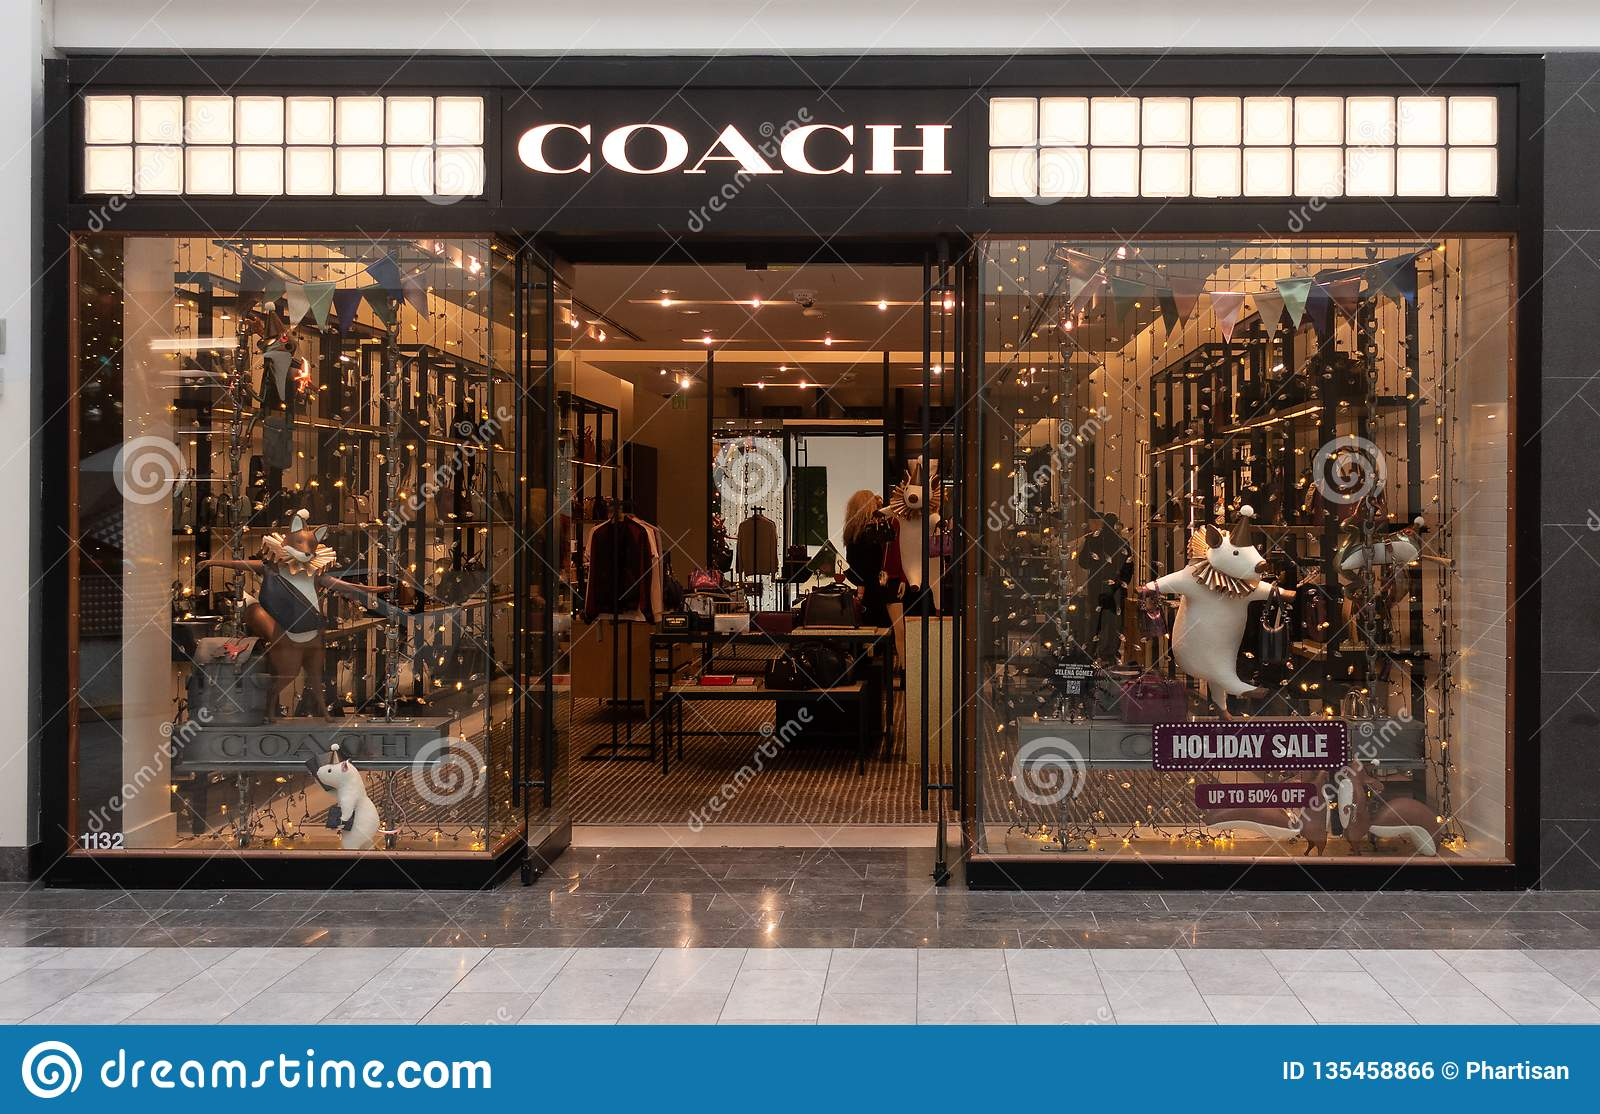 f62ae531d1 Scottsdale,Az/USA - 12.6.18:Coach owned by Tapestry, Inc. was founded in  1941 in NYC., known for women`s apparels and accessories which include  handbags, ...